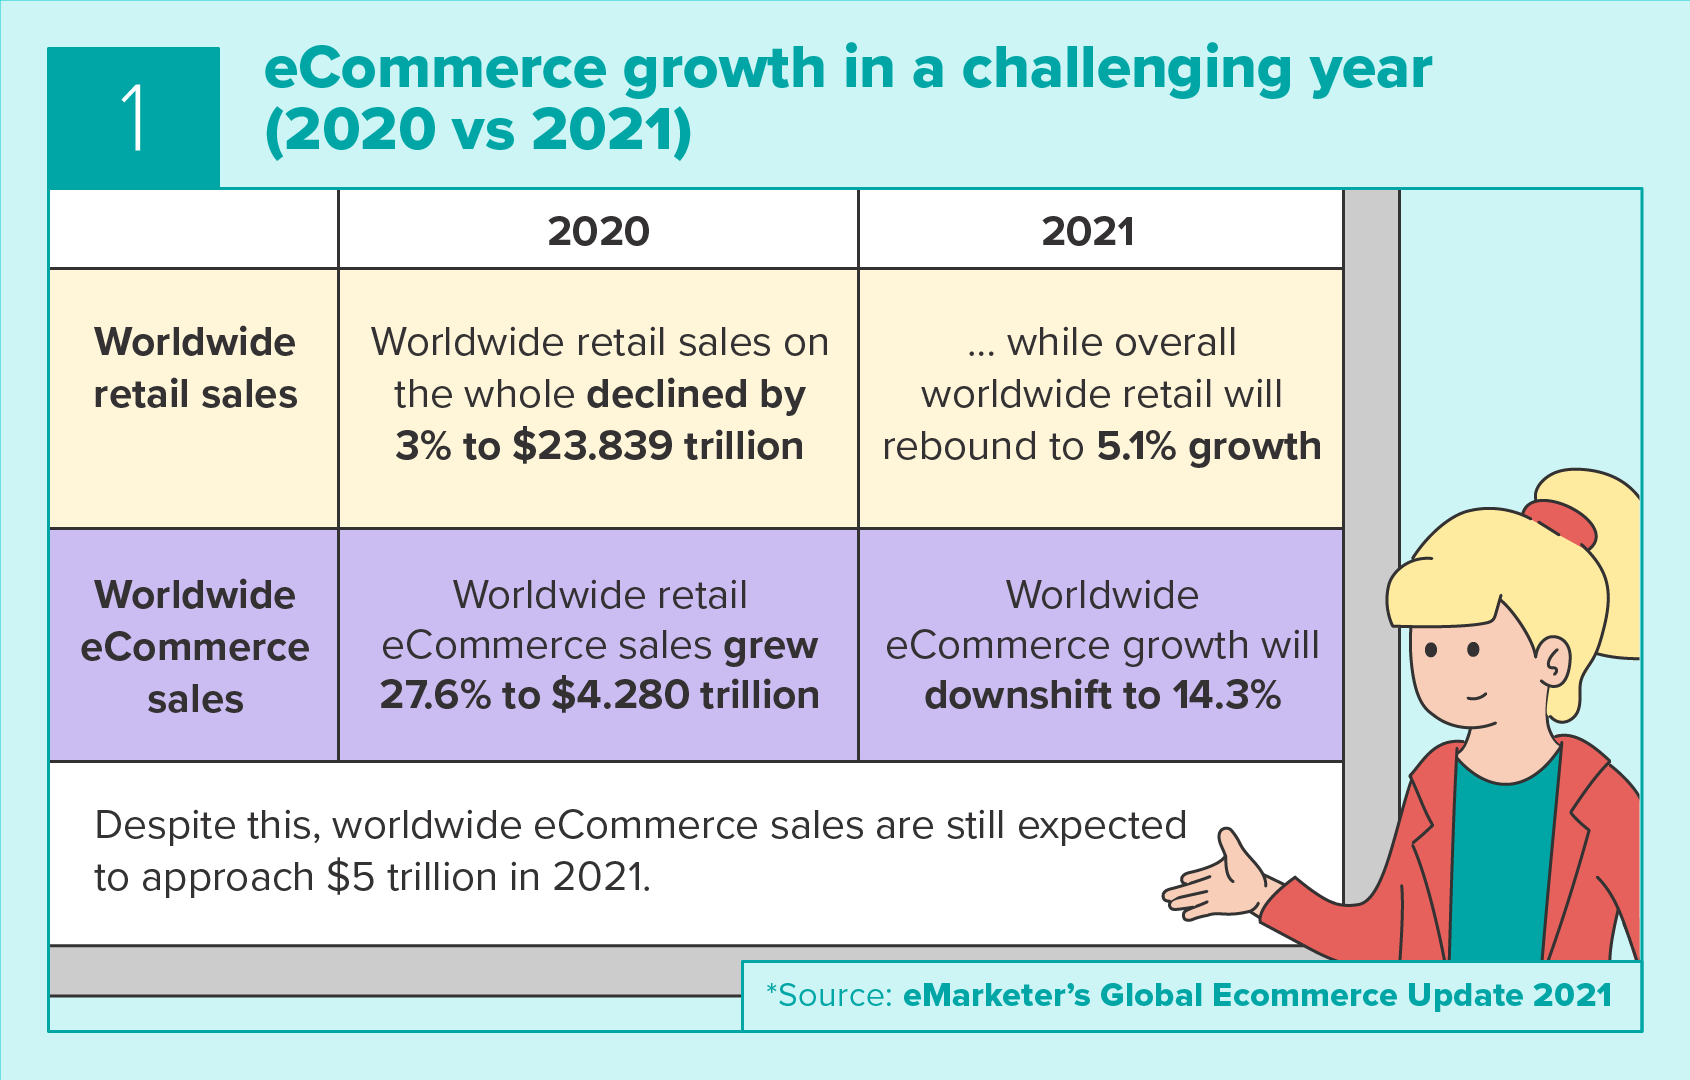 eCommerce growth in a challenging year